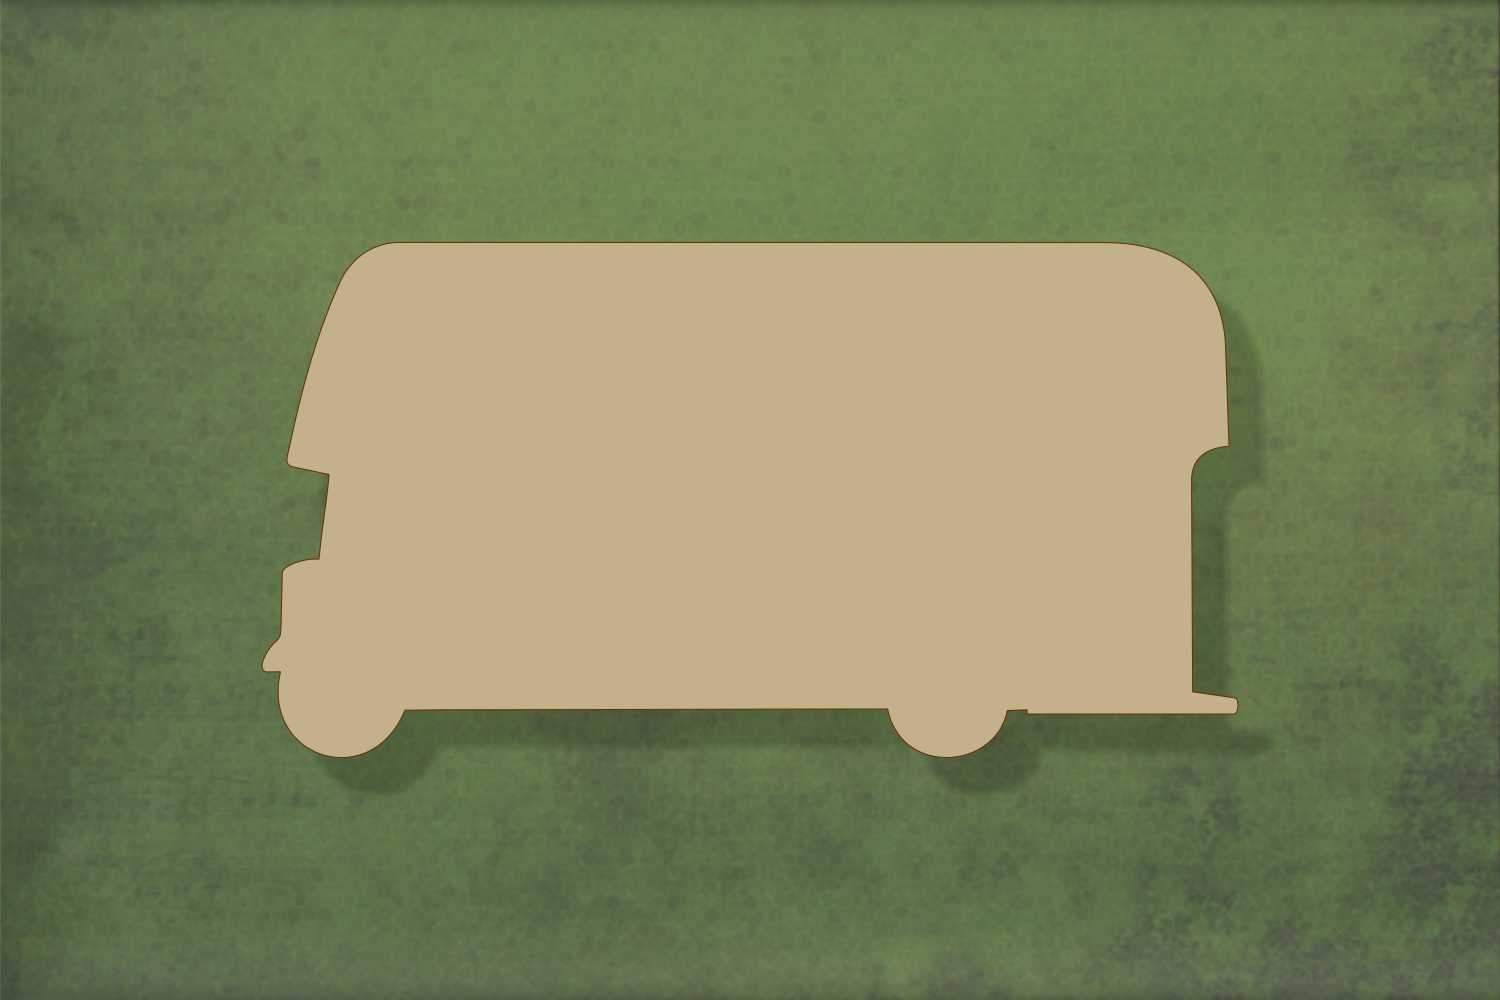 Laser cut, blank wooden Bus shape for craft